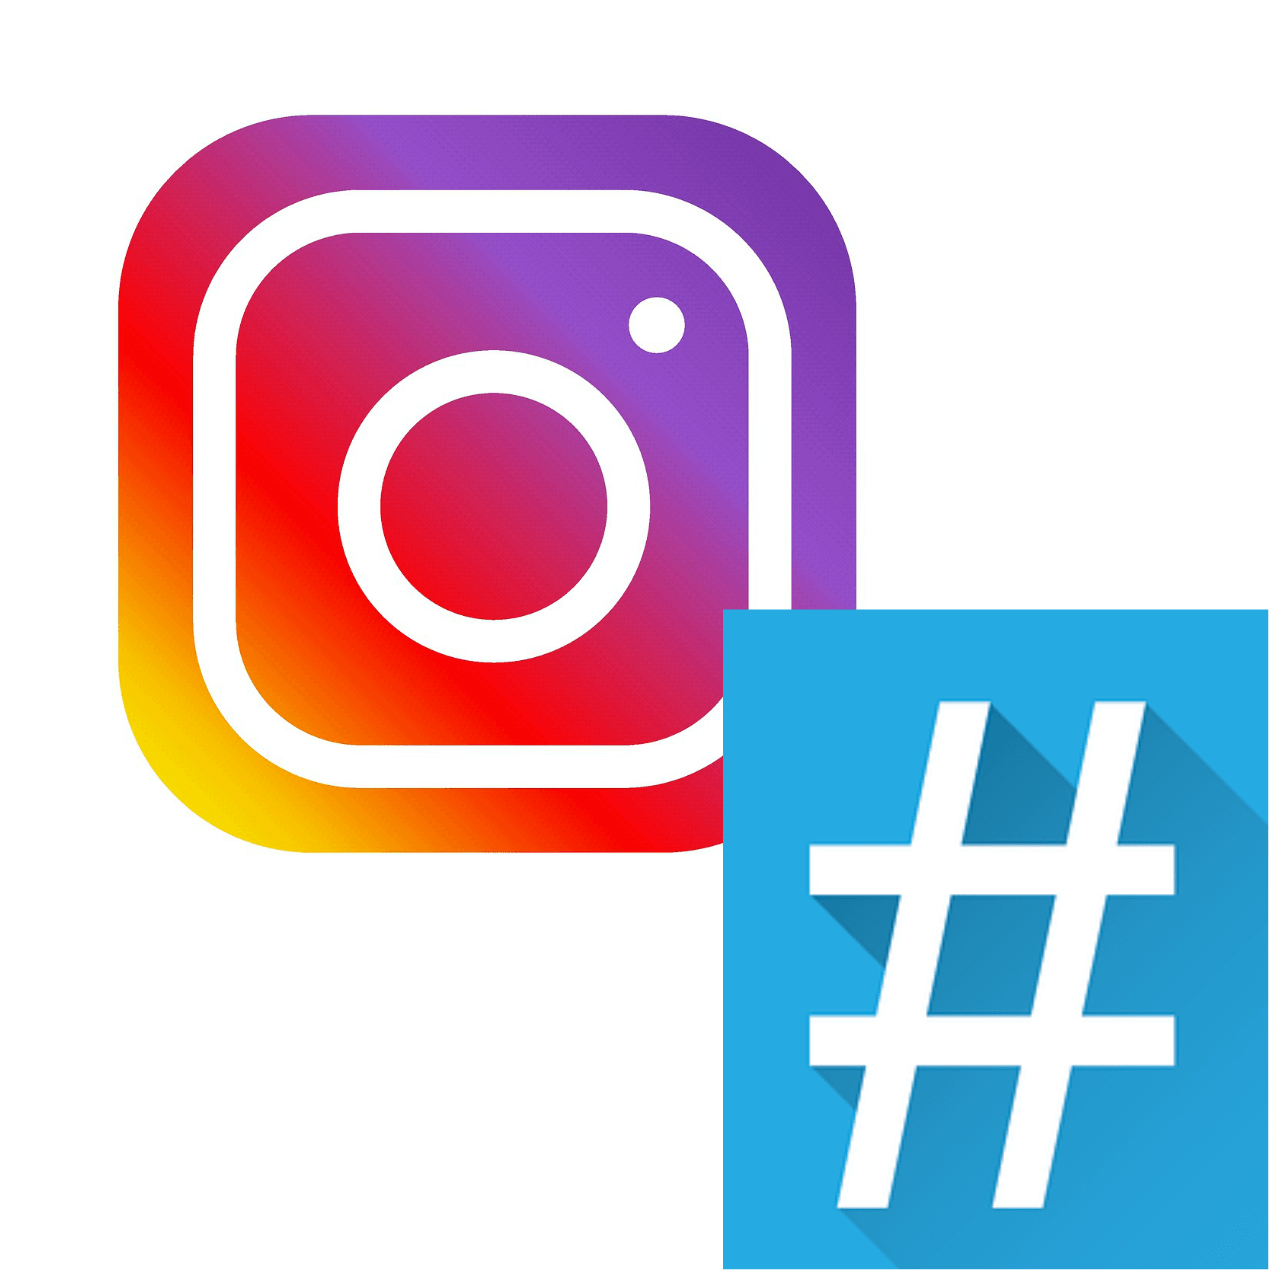 instagram logo and hashtag in one photo